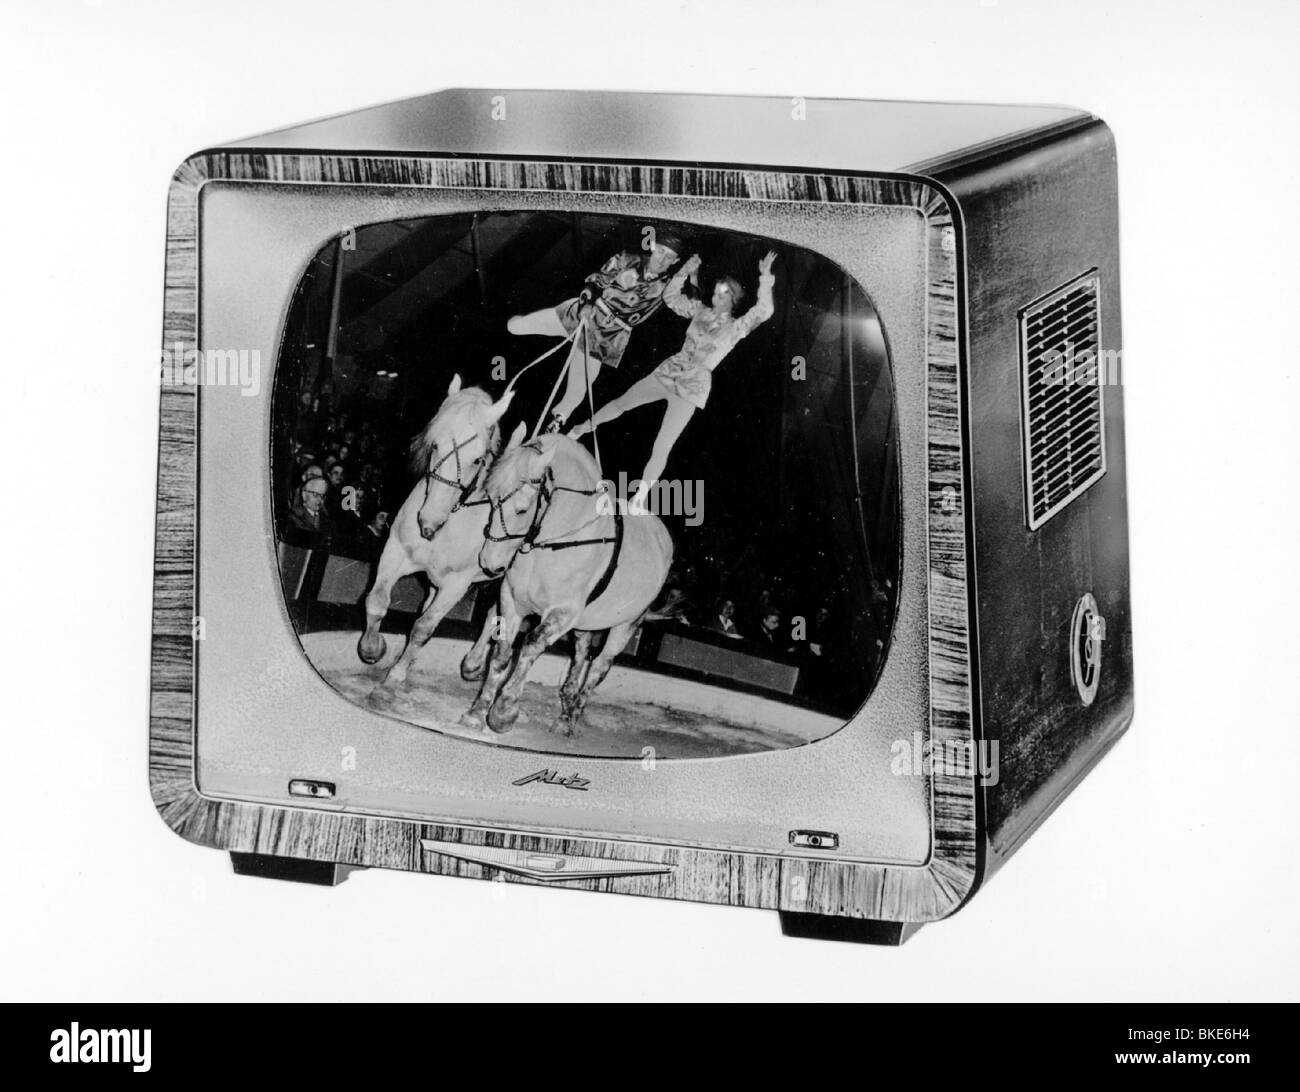 broadcast, television, television set, Metz 822 / 862, 1950s, , Additional-Rights-Clearances-NA - Stock Image